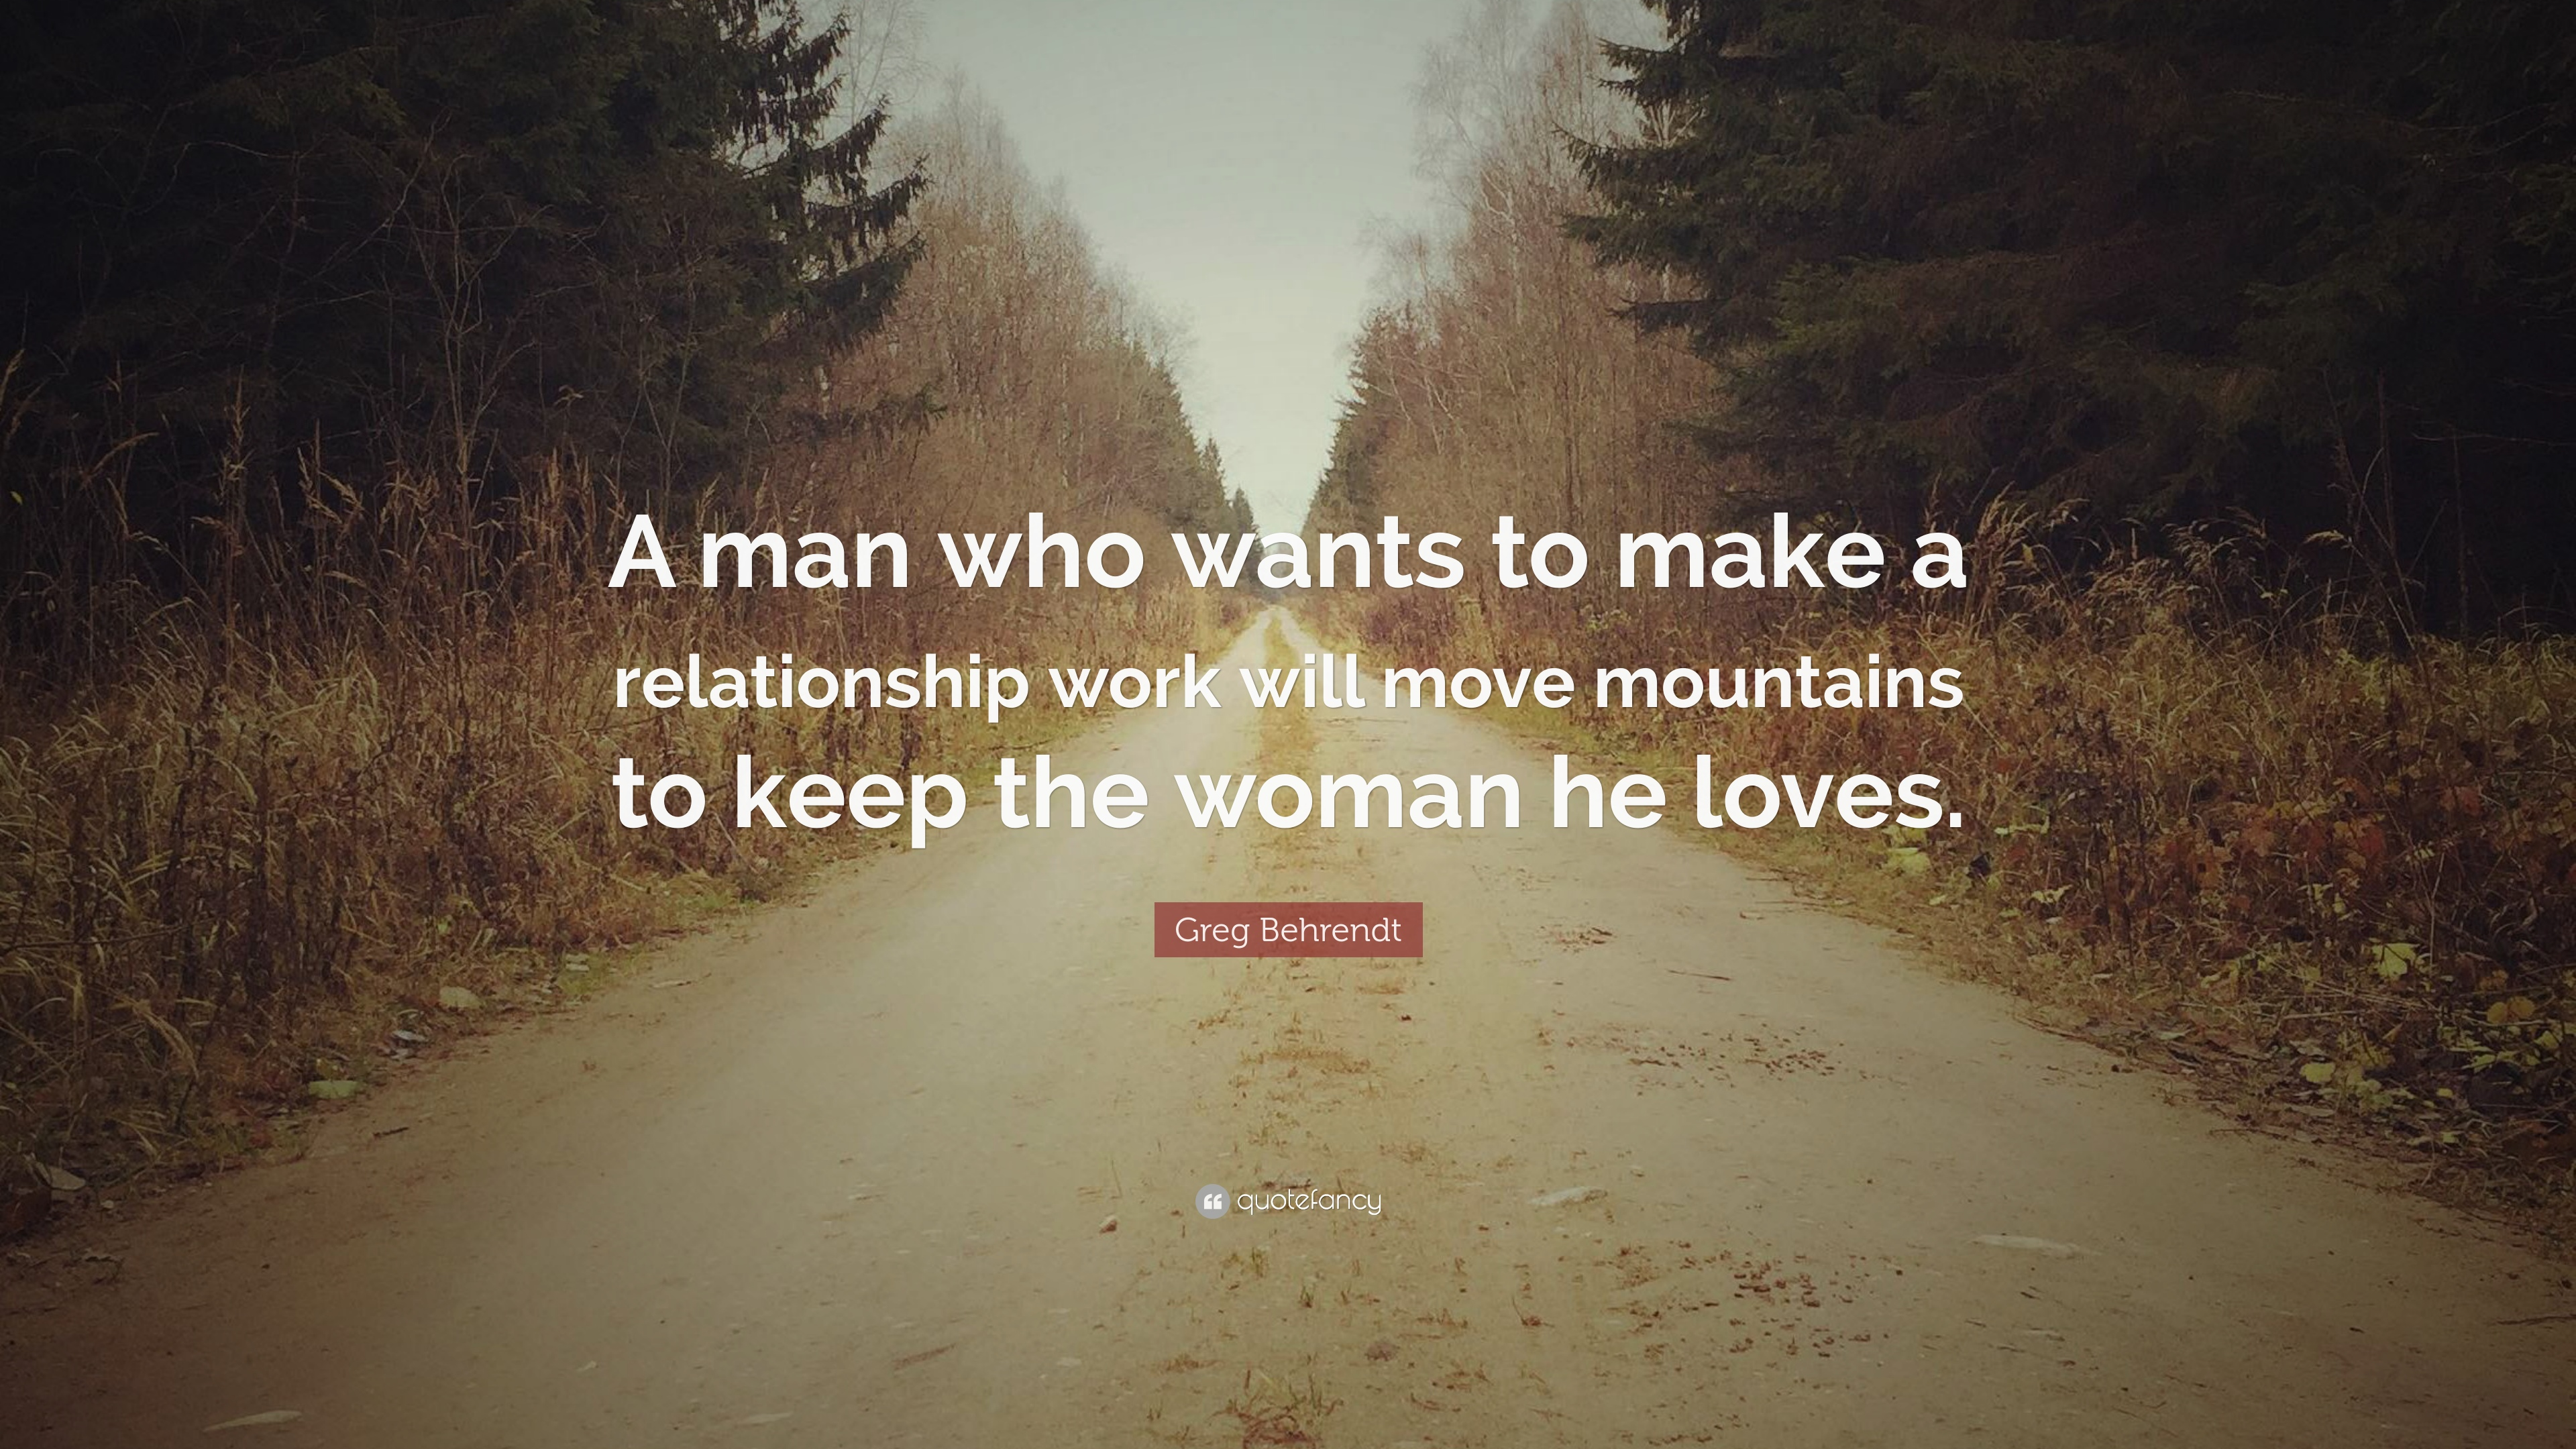 When A Man Loves A Woman He Will Move Mountains